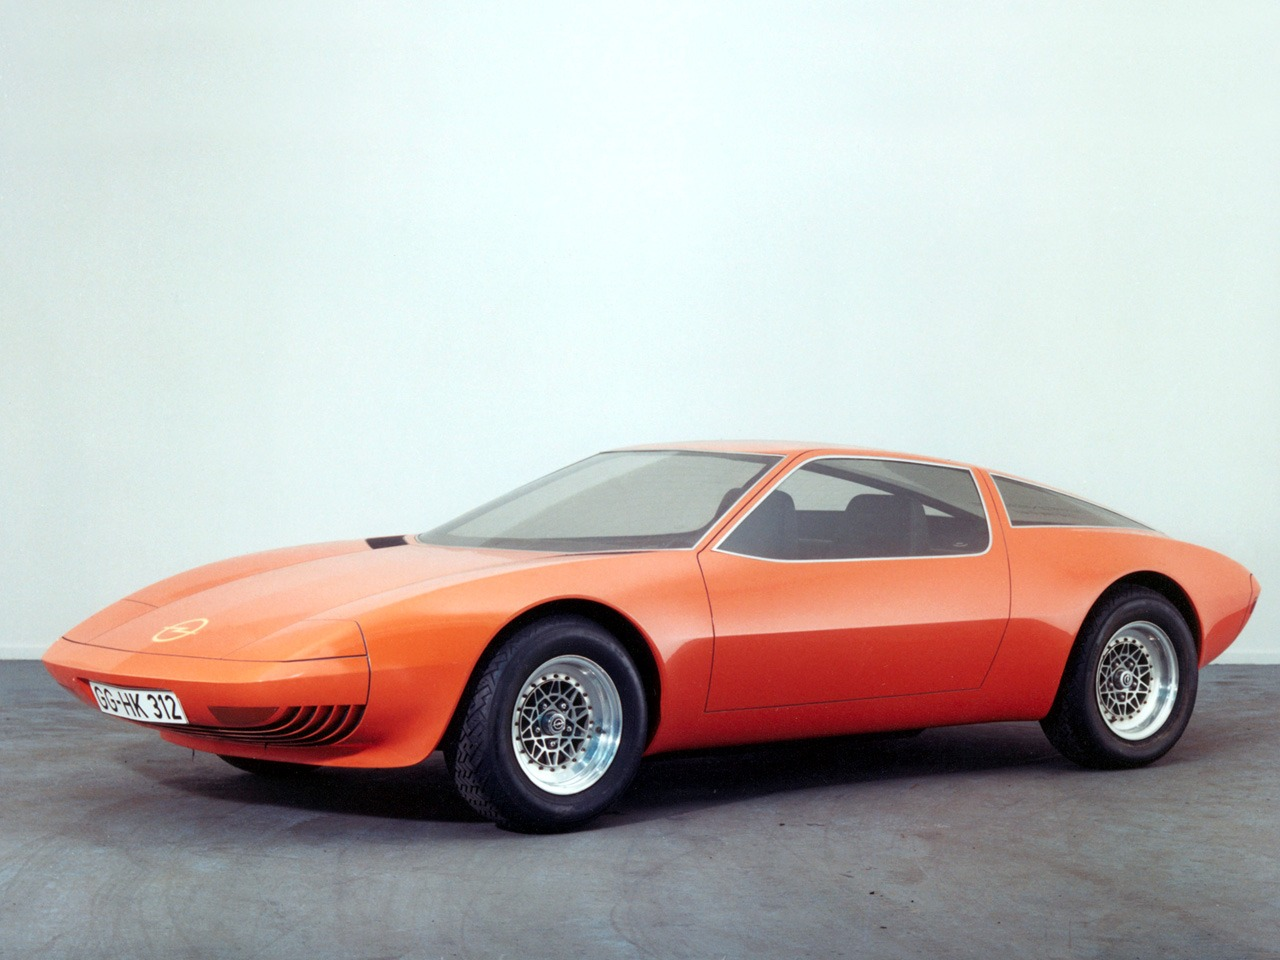 Opel Gt W Geneve Concept 1975 Old Concept Cars